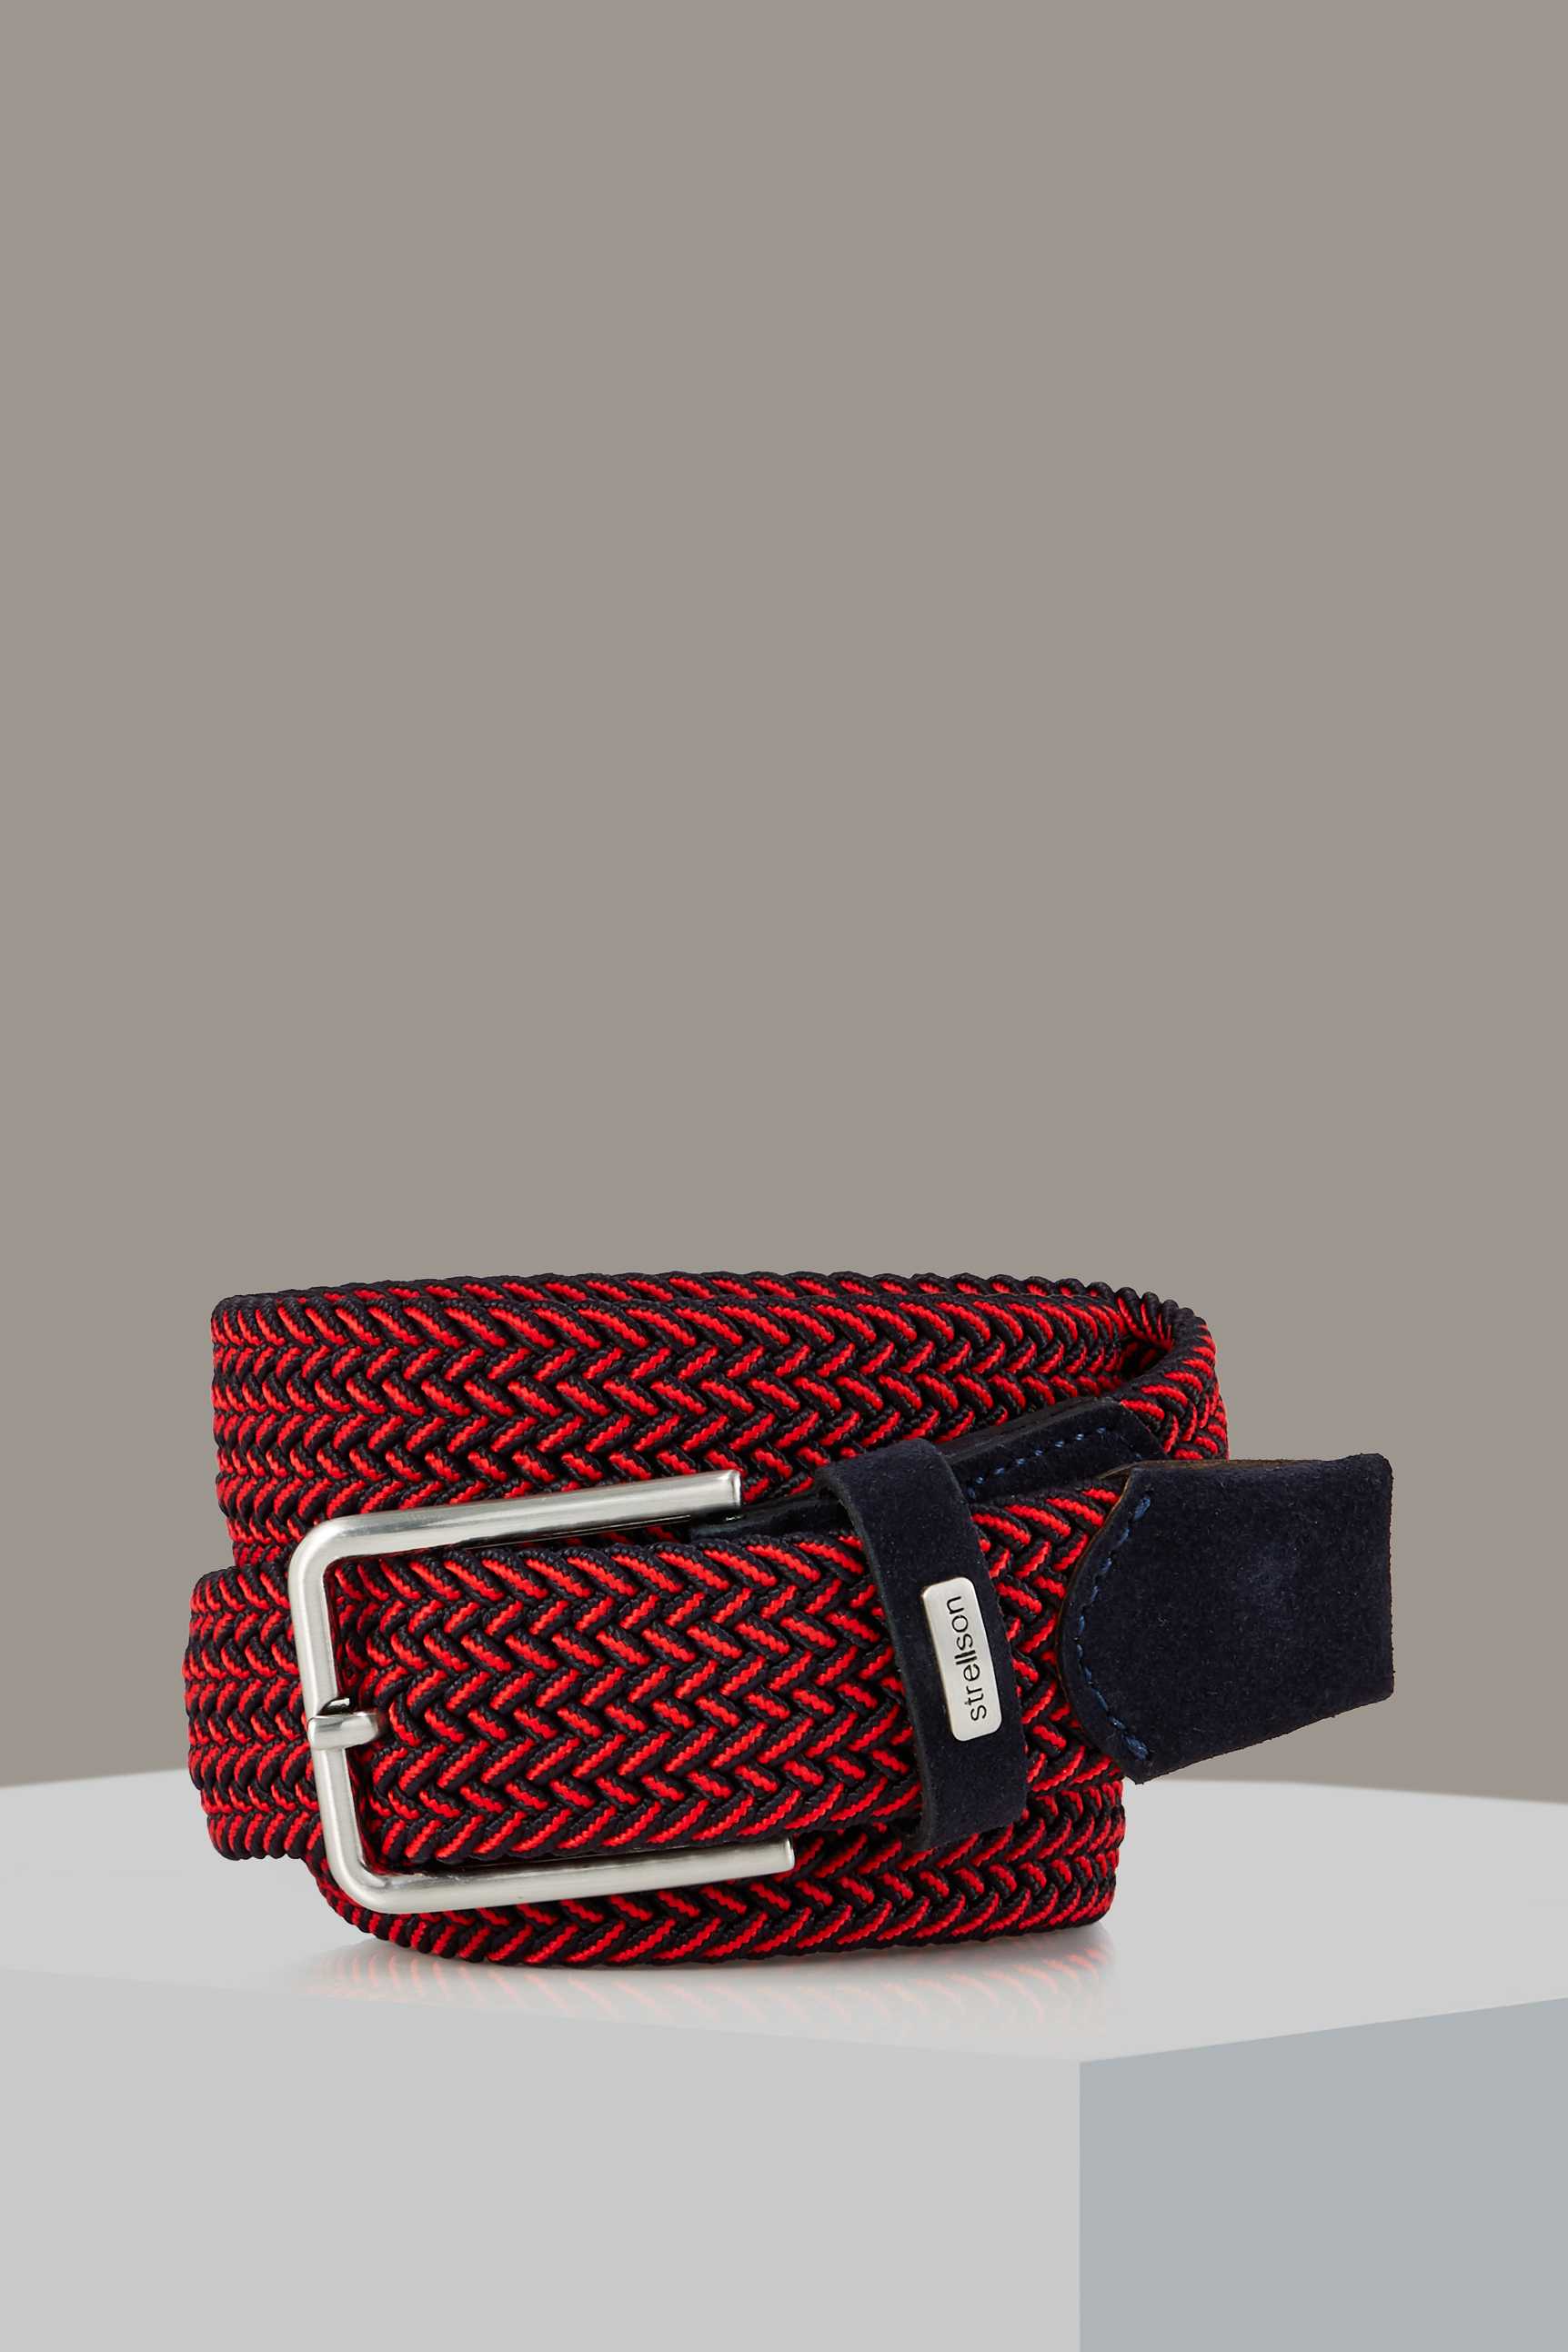 Ceinture Flex Cross, navy/rouge à motif